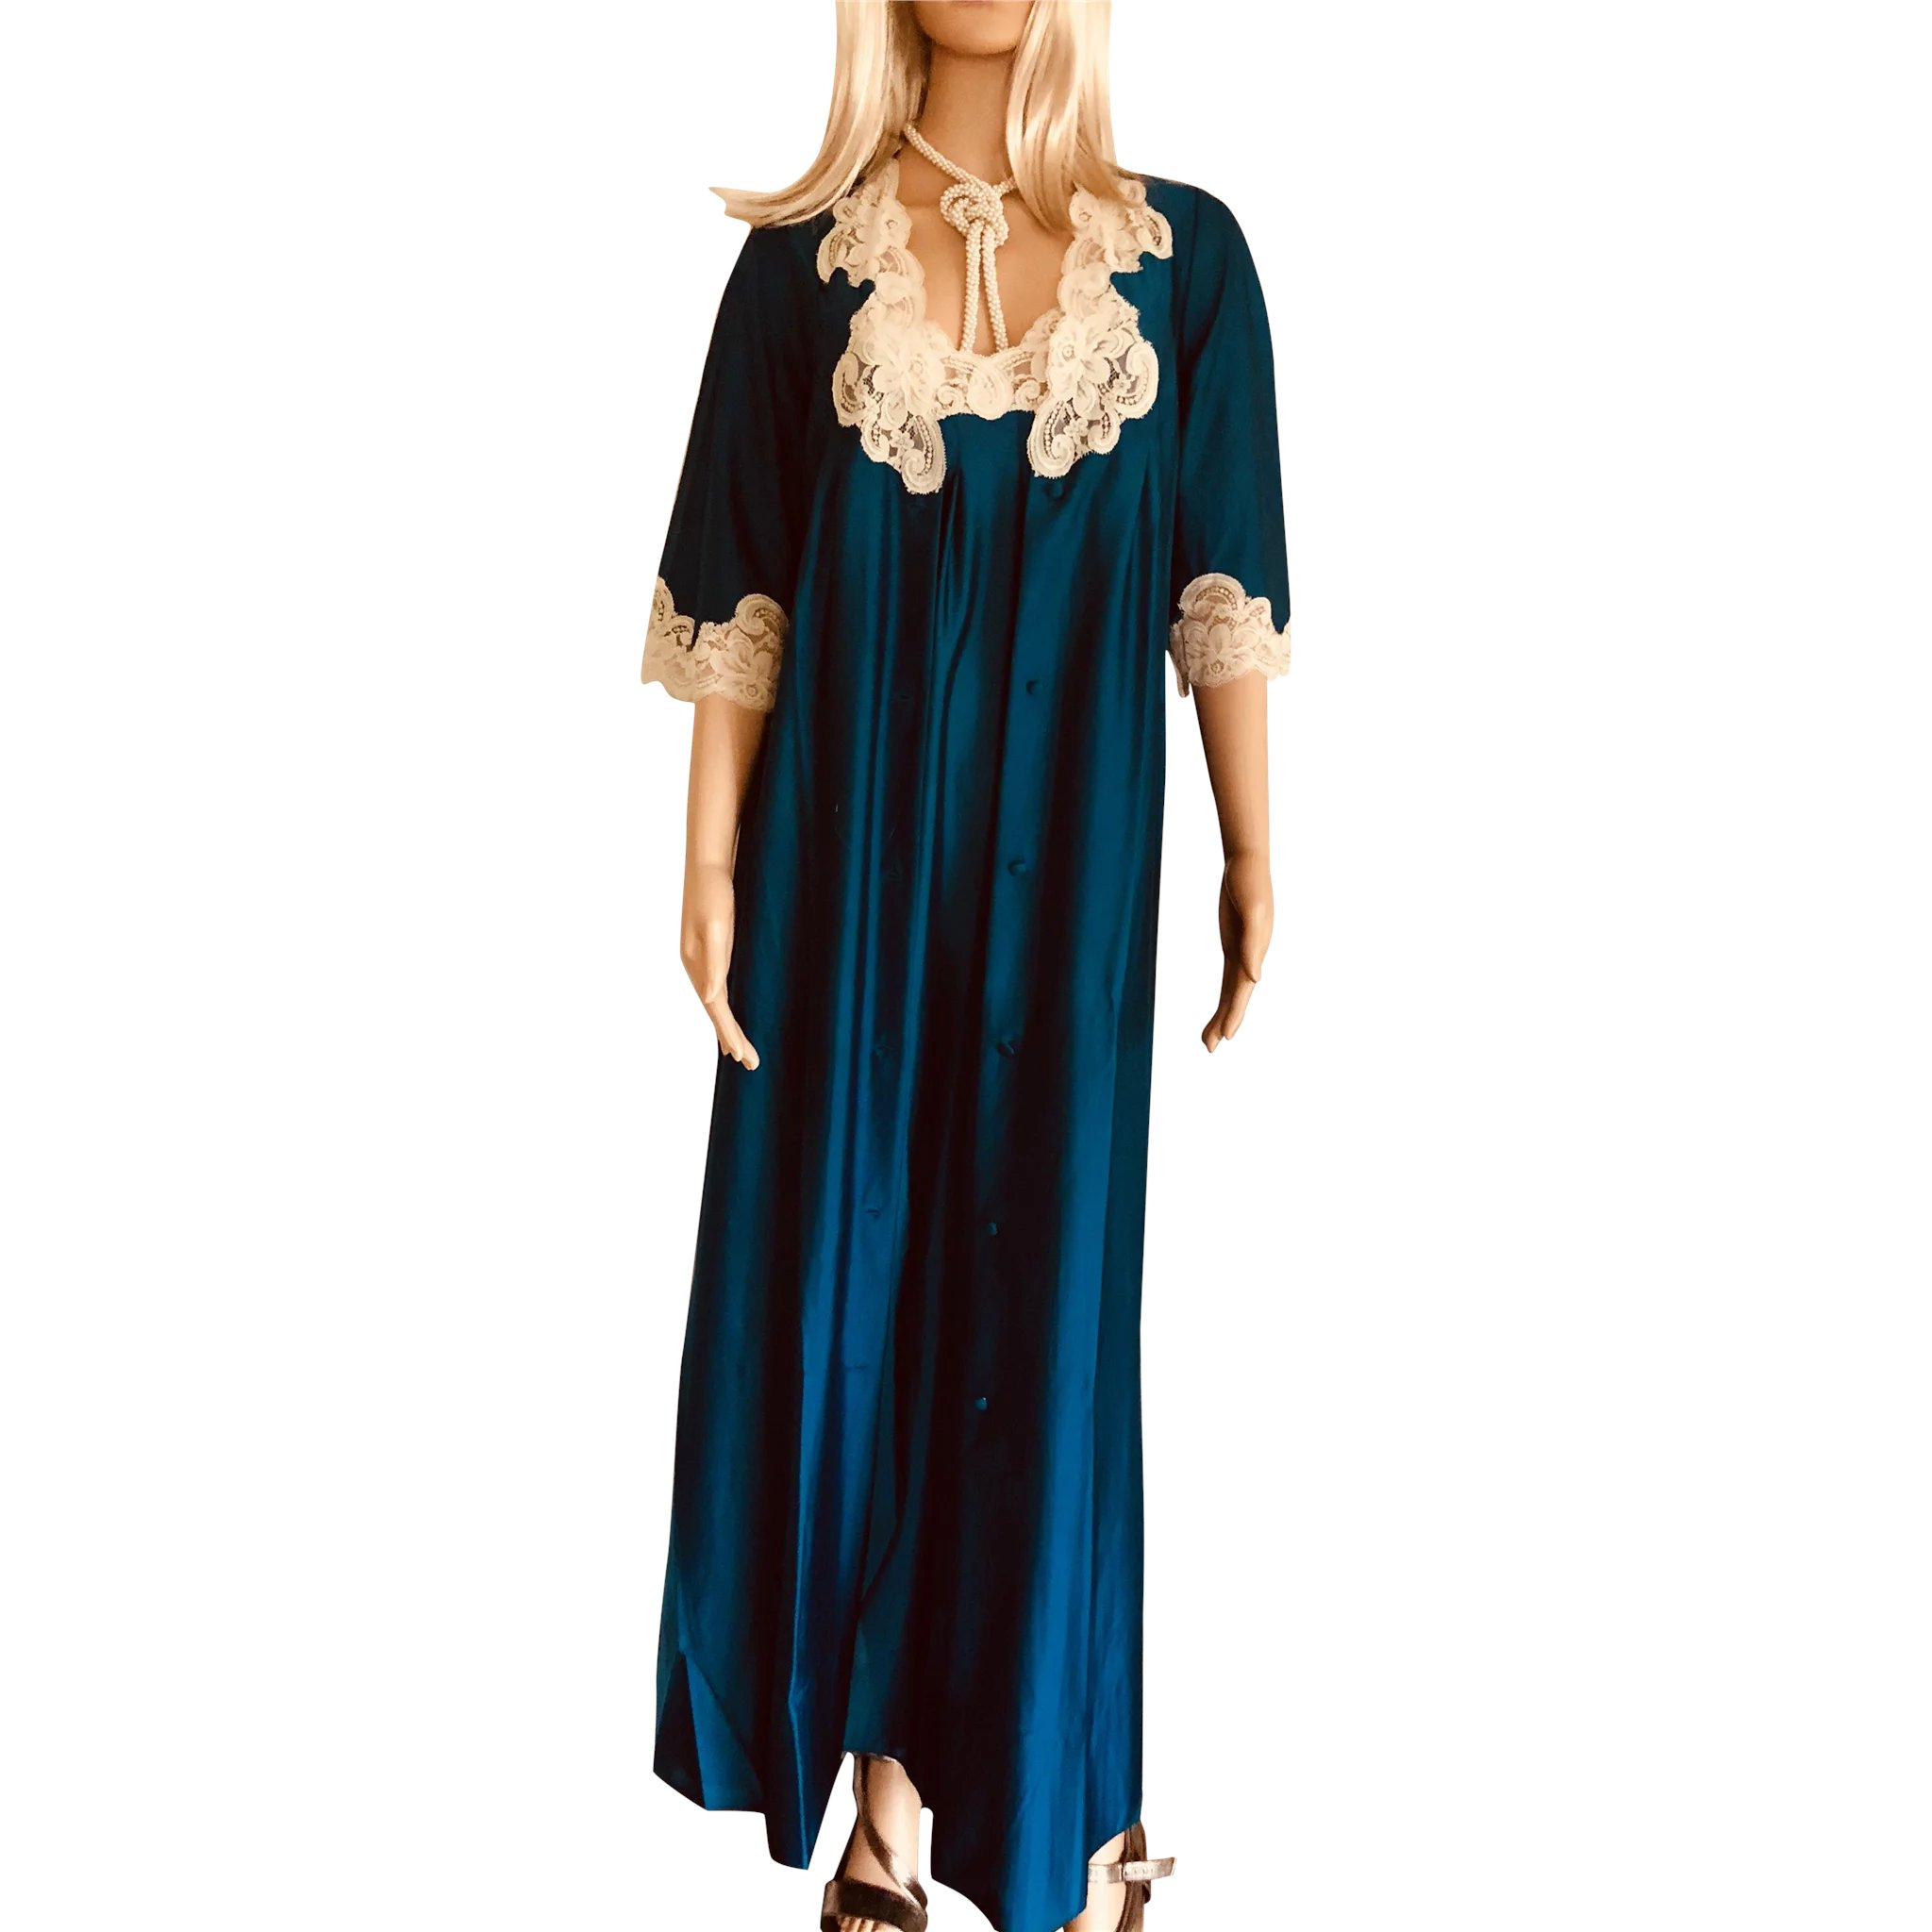 1981 SHADOWLINE Blue Gown & Robe New w/Tags Old Stock : Treasures ...